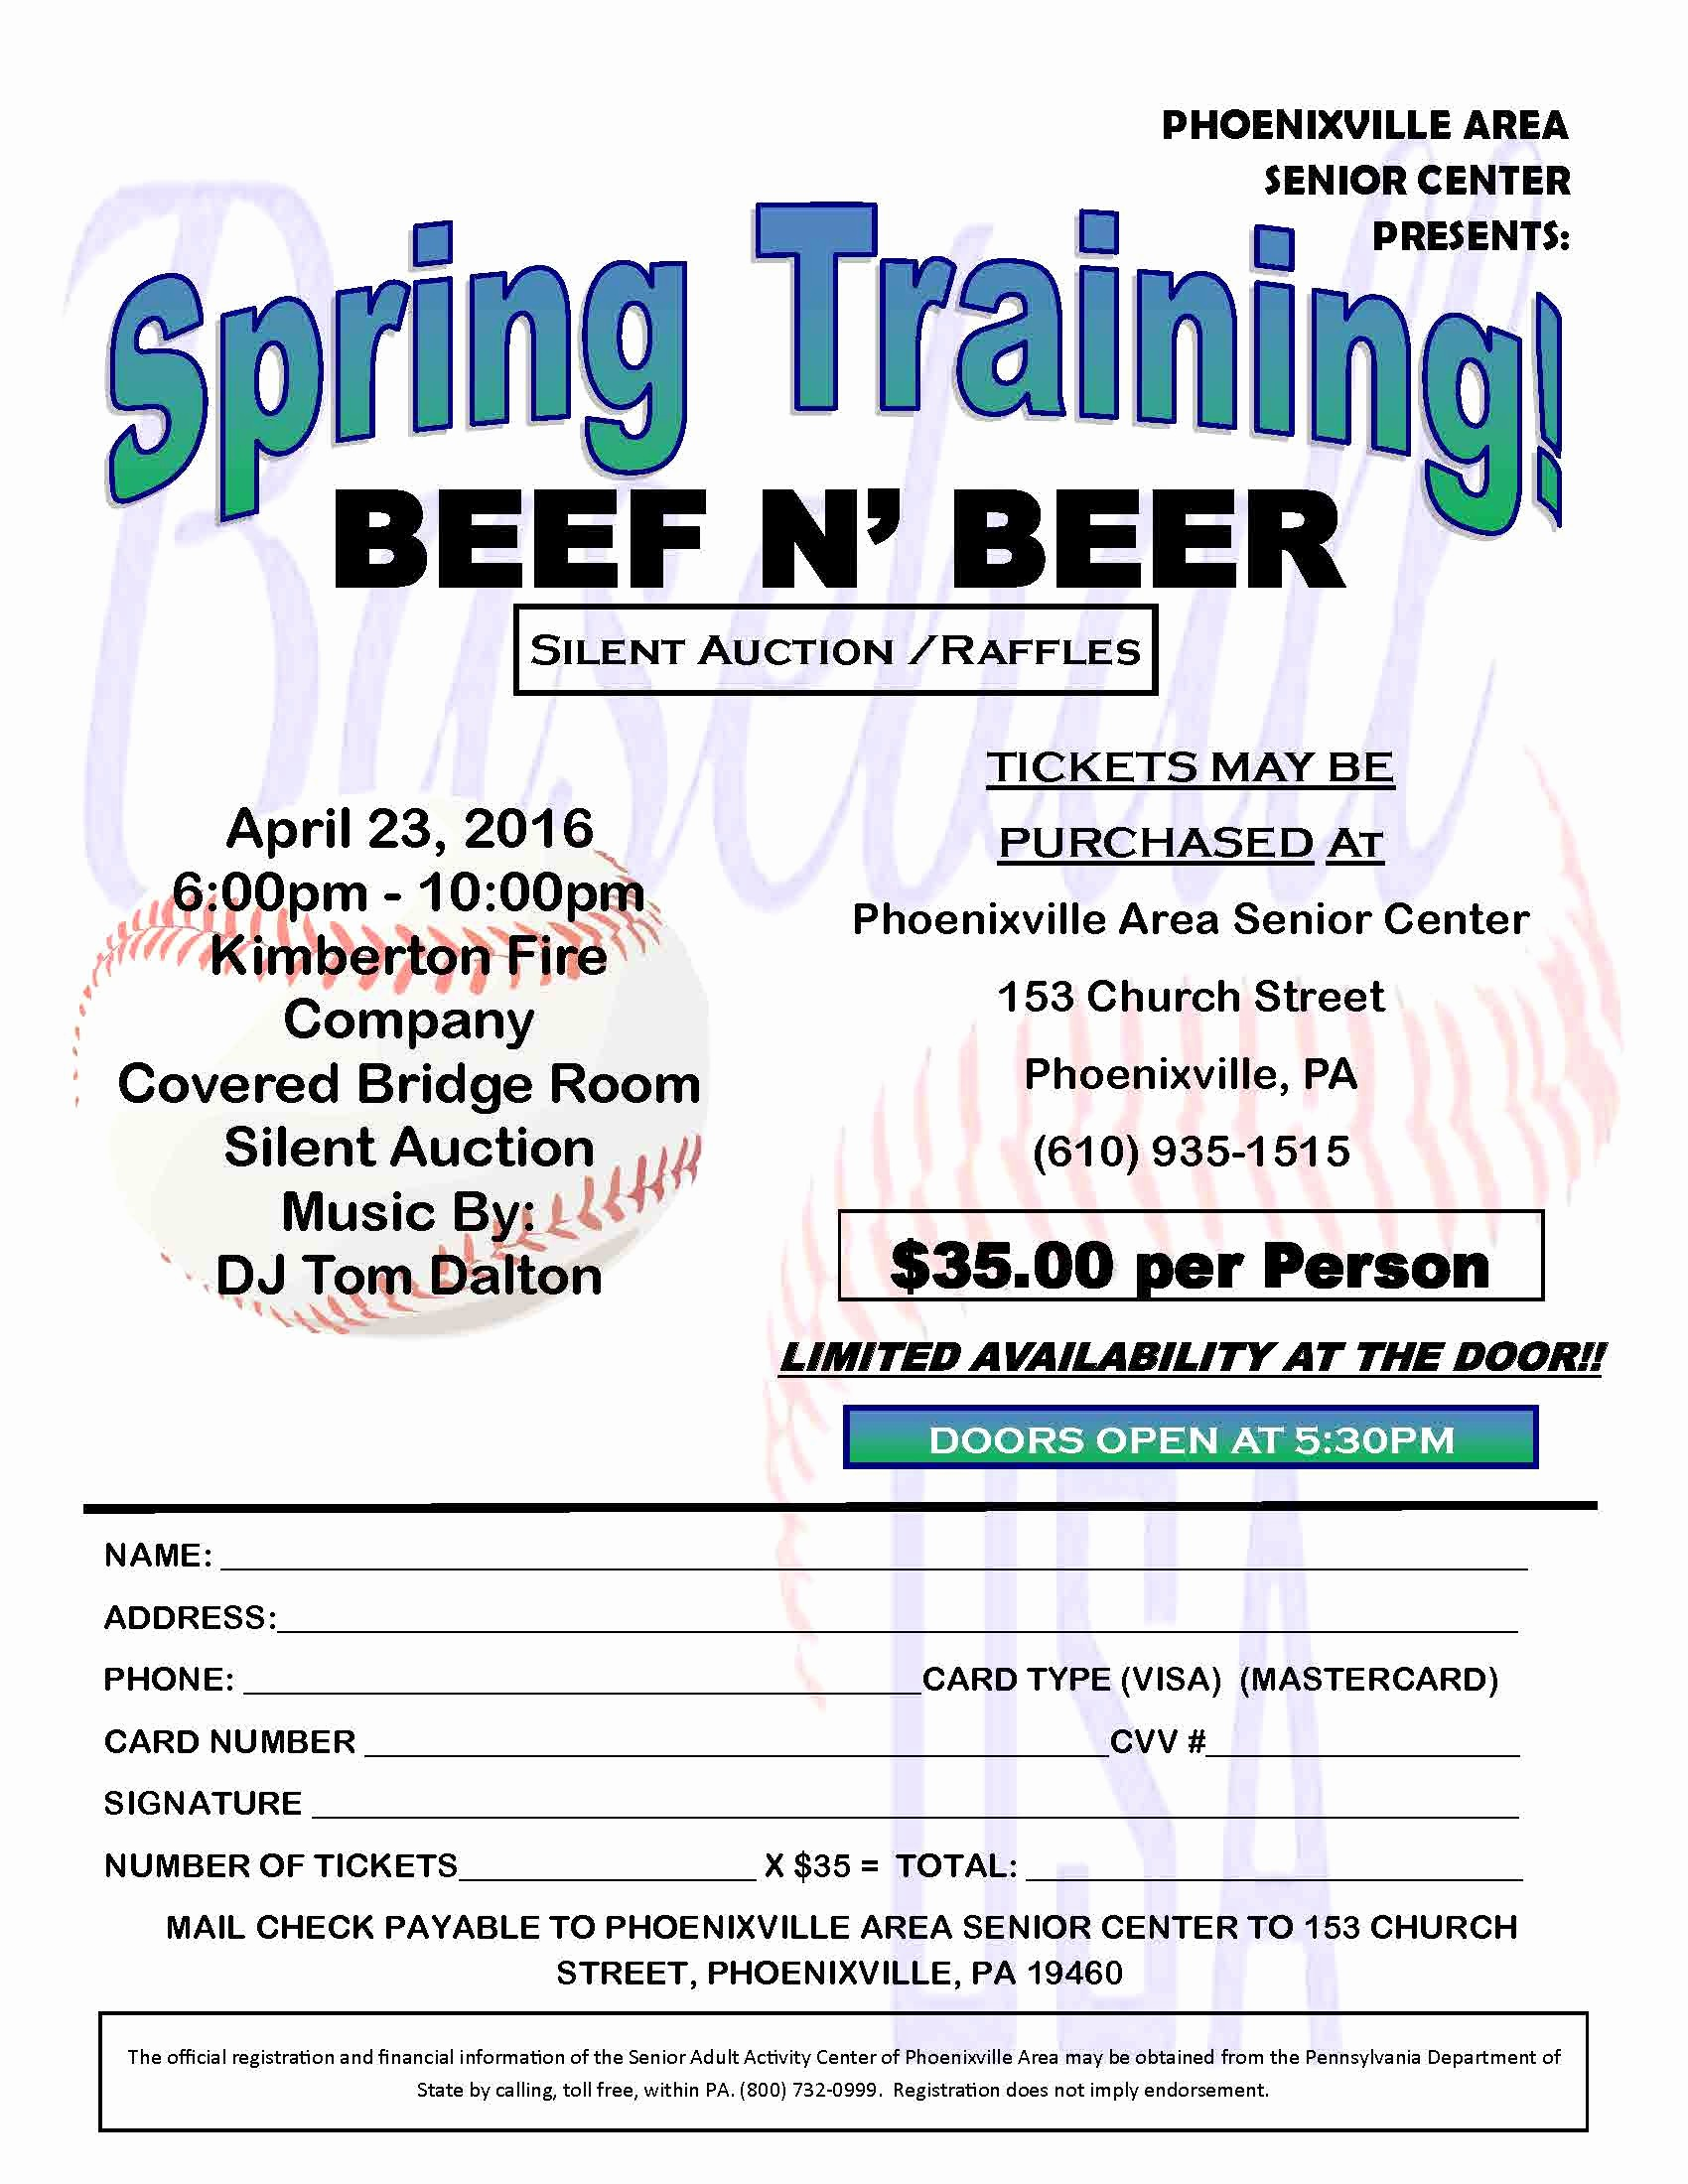 Raffle Flyer Templates Free Download Luxury Beef and Beer Flyer Fundraising Blank Packing Slip and